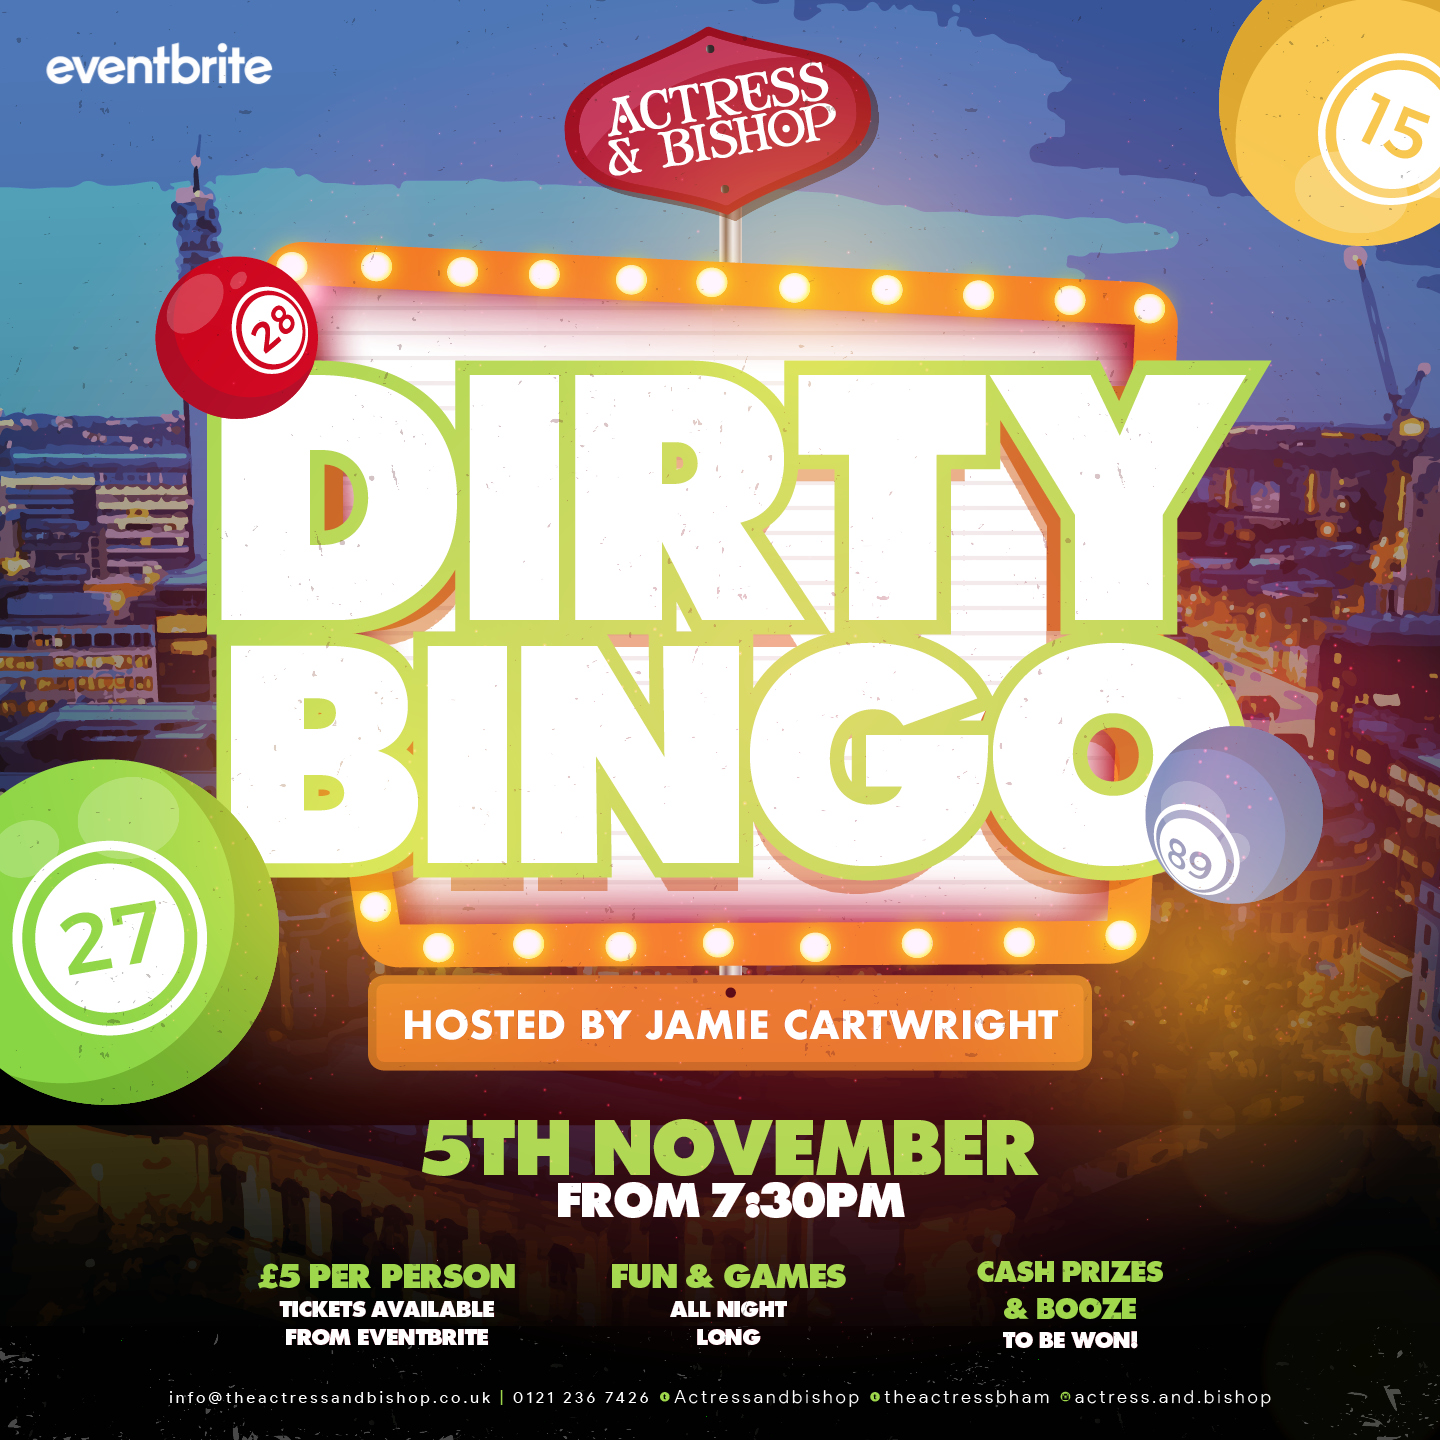 DIRTY BINGO IS BACK!